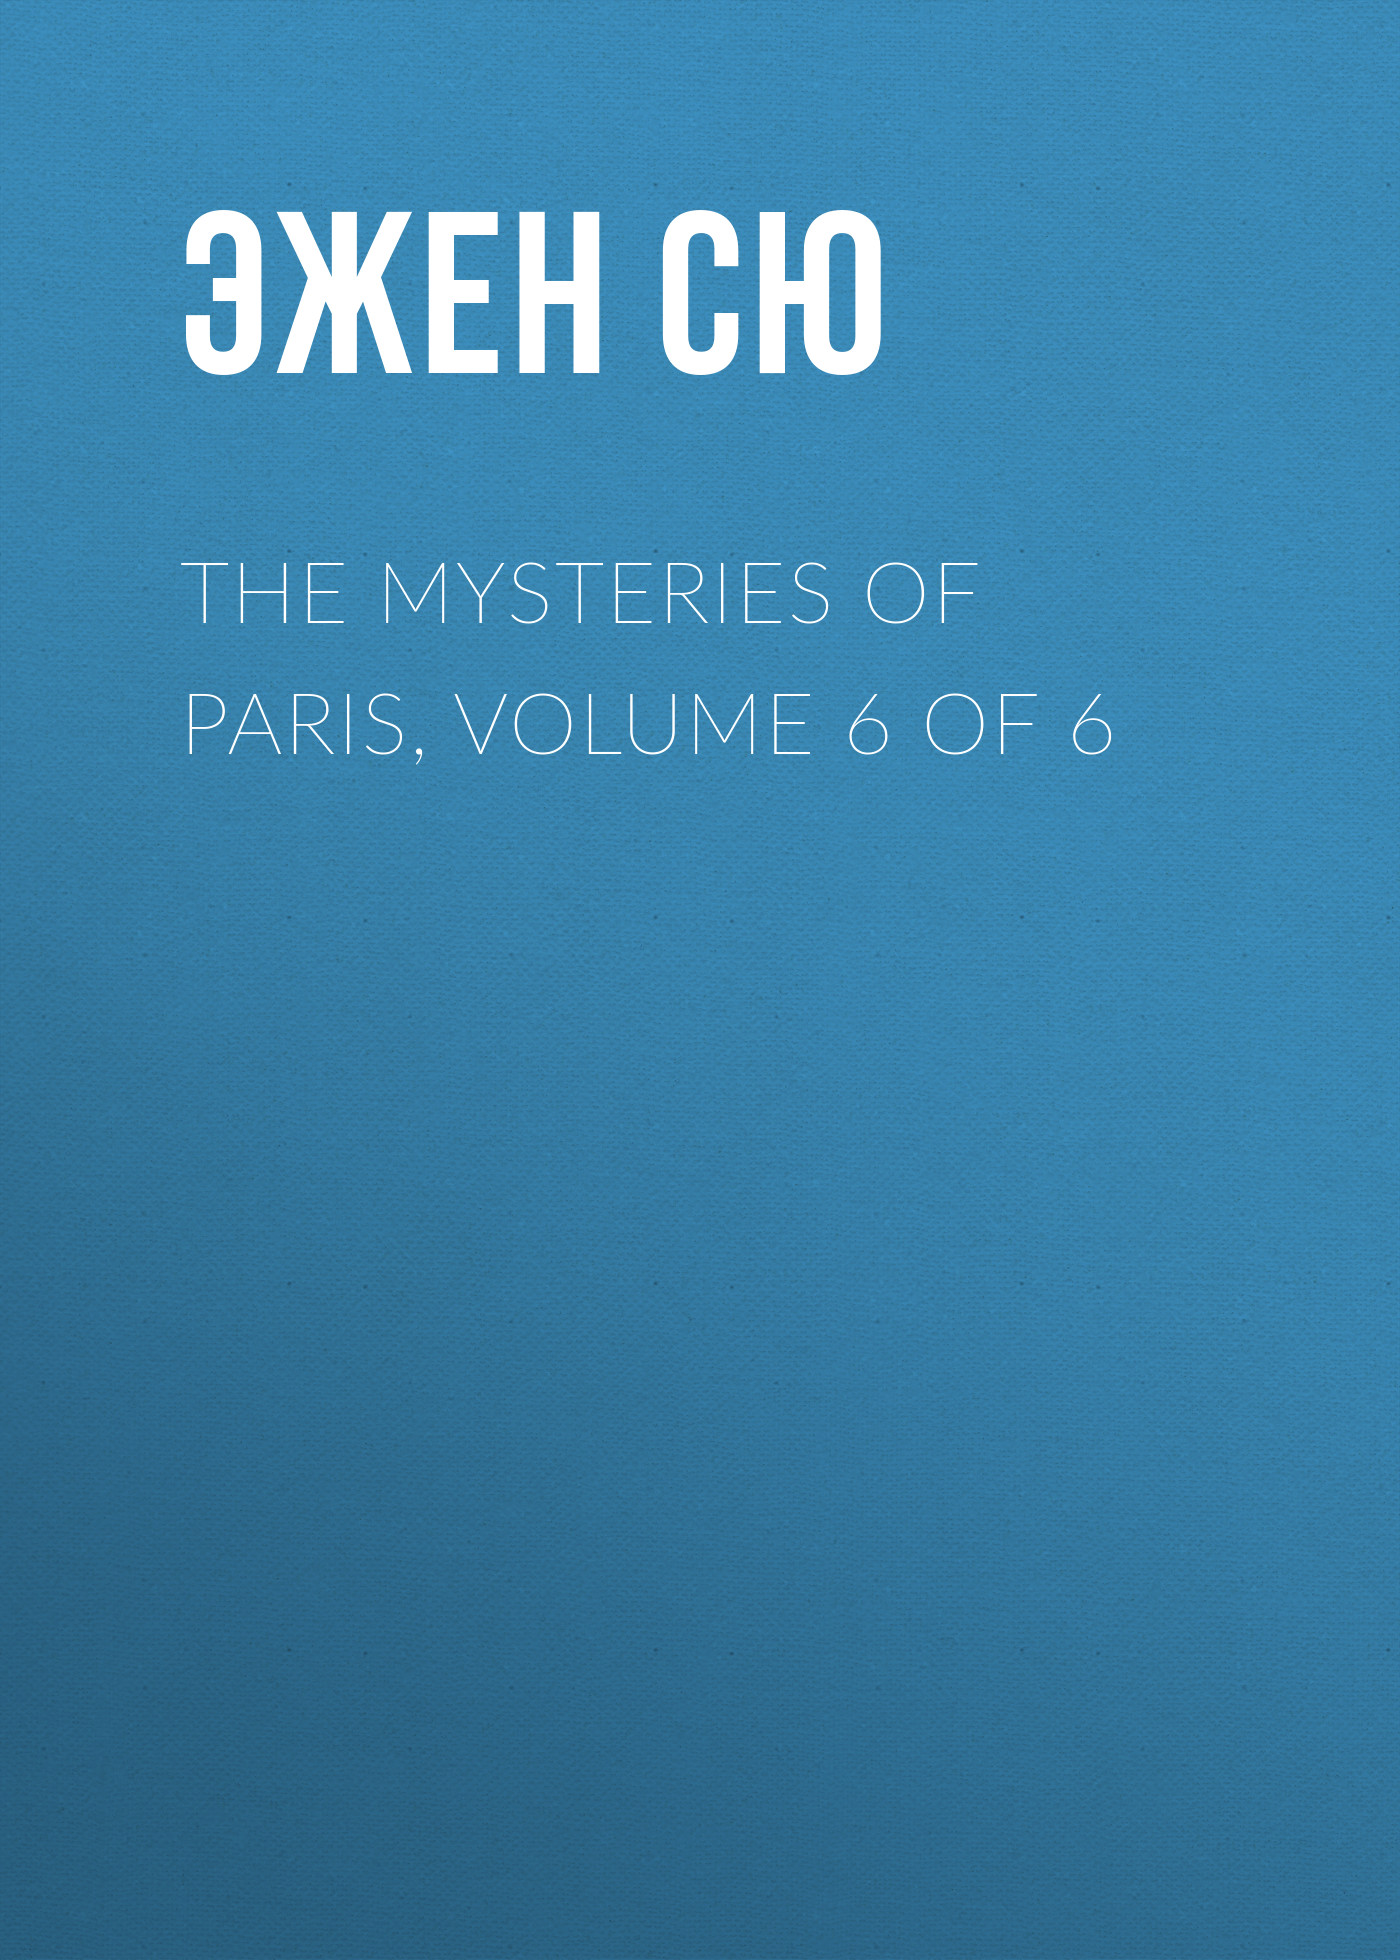 Эжен Сю The Mysteries of Paris, Volume 6 of 6 эжен сю the mysteries of paris volume 5 of 6